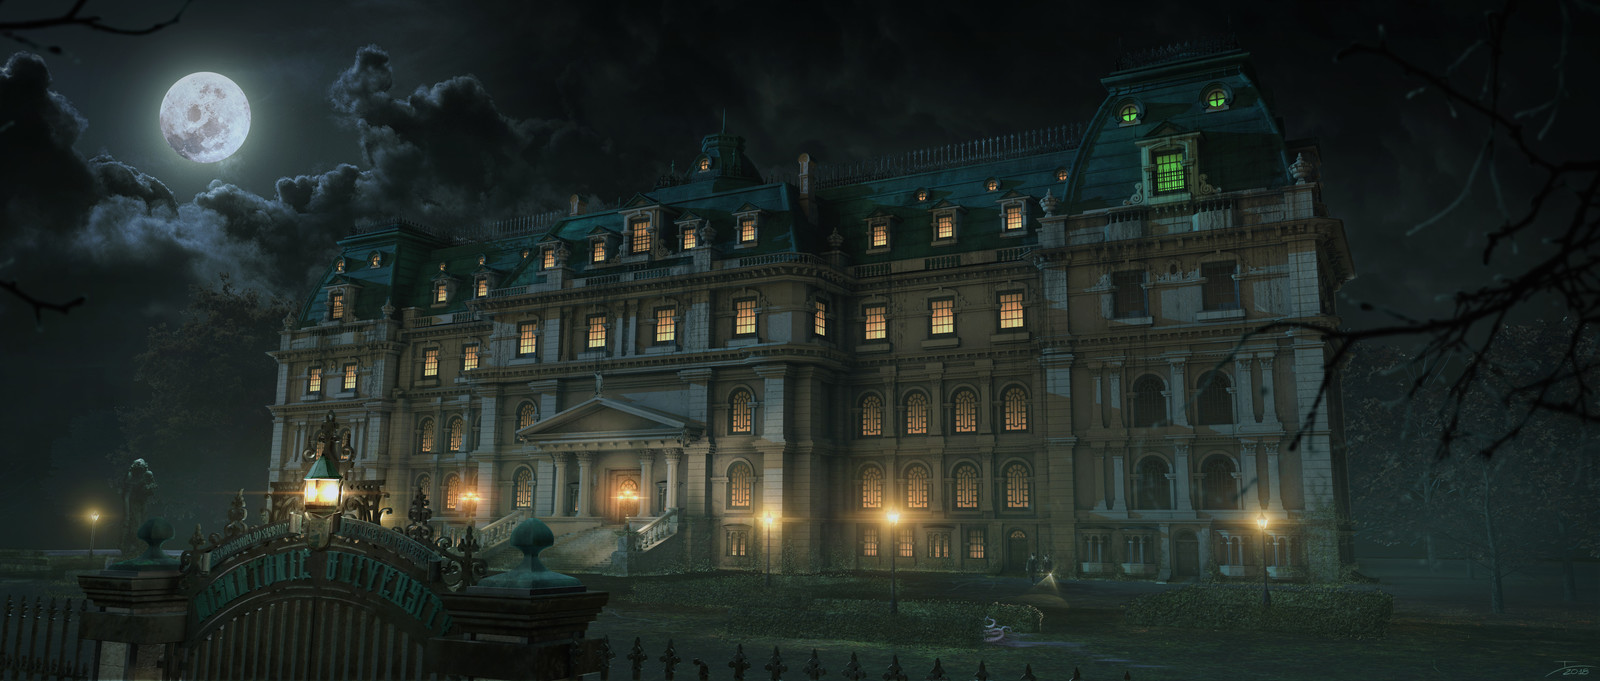 My view of the Miskatonic University from Lovecraft's tales.